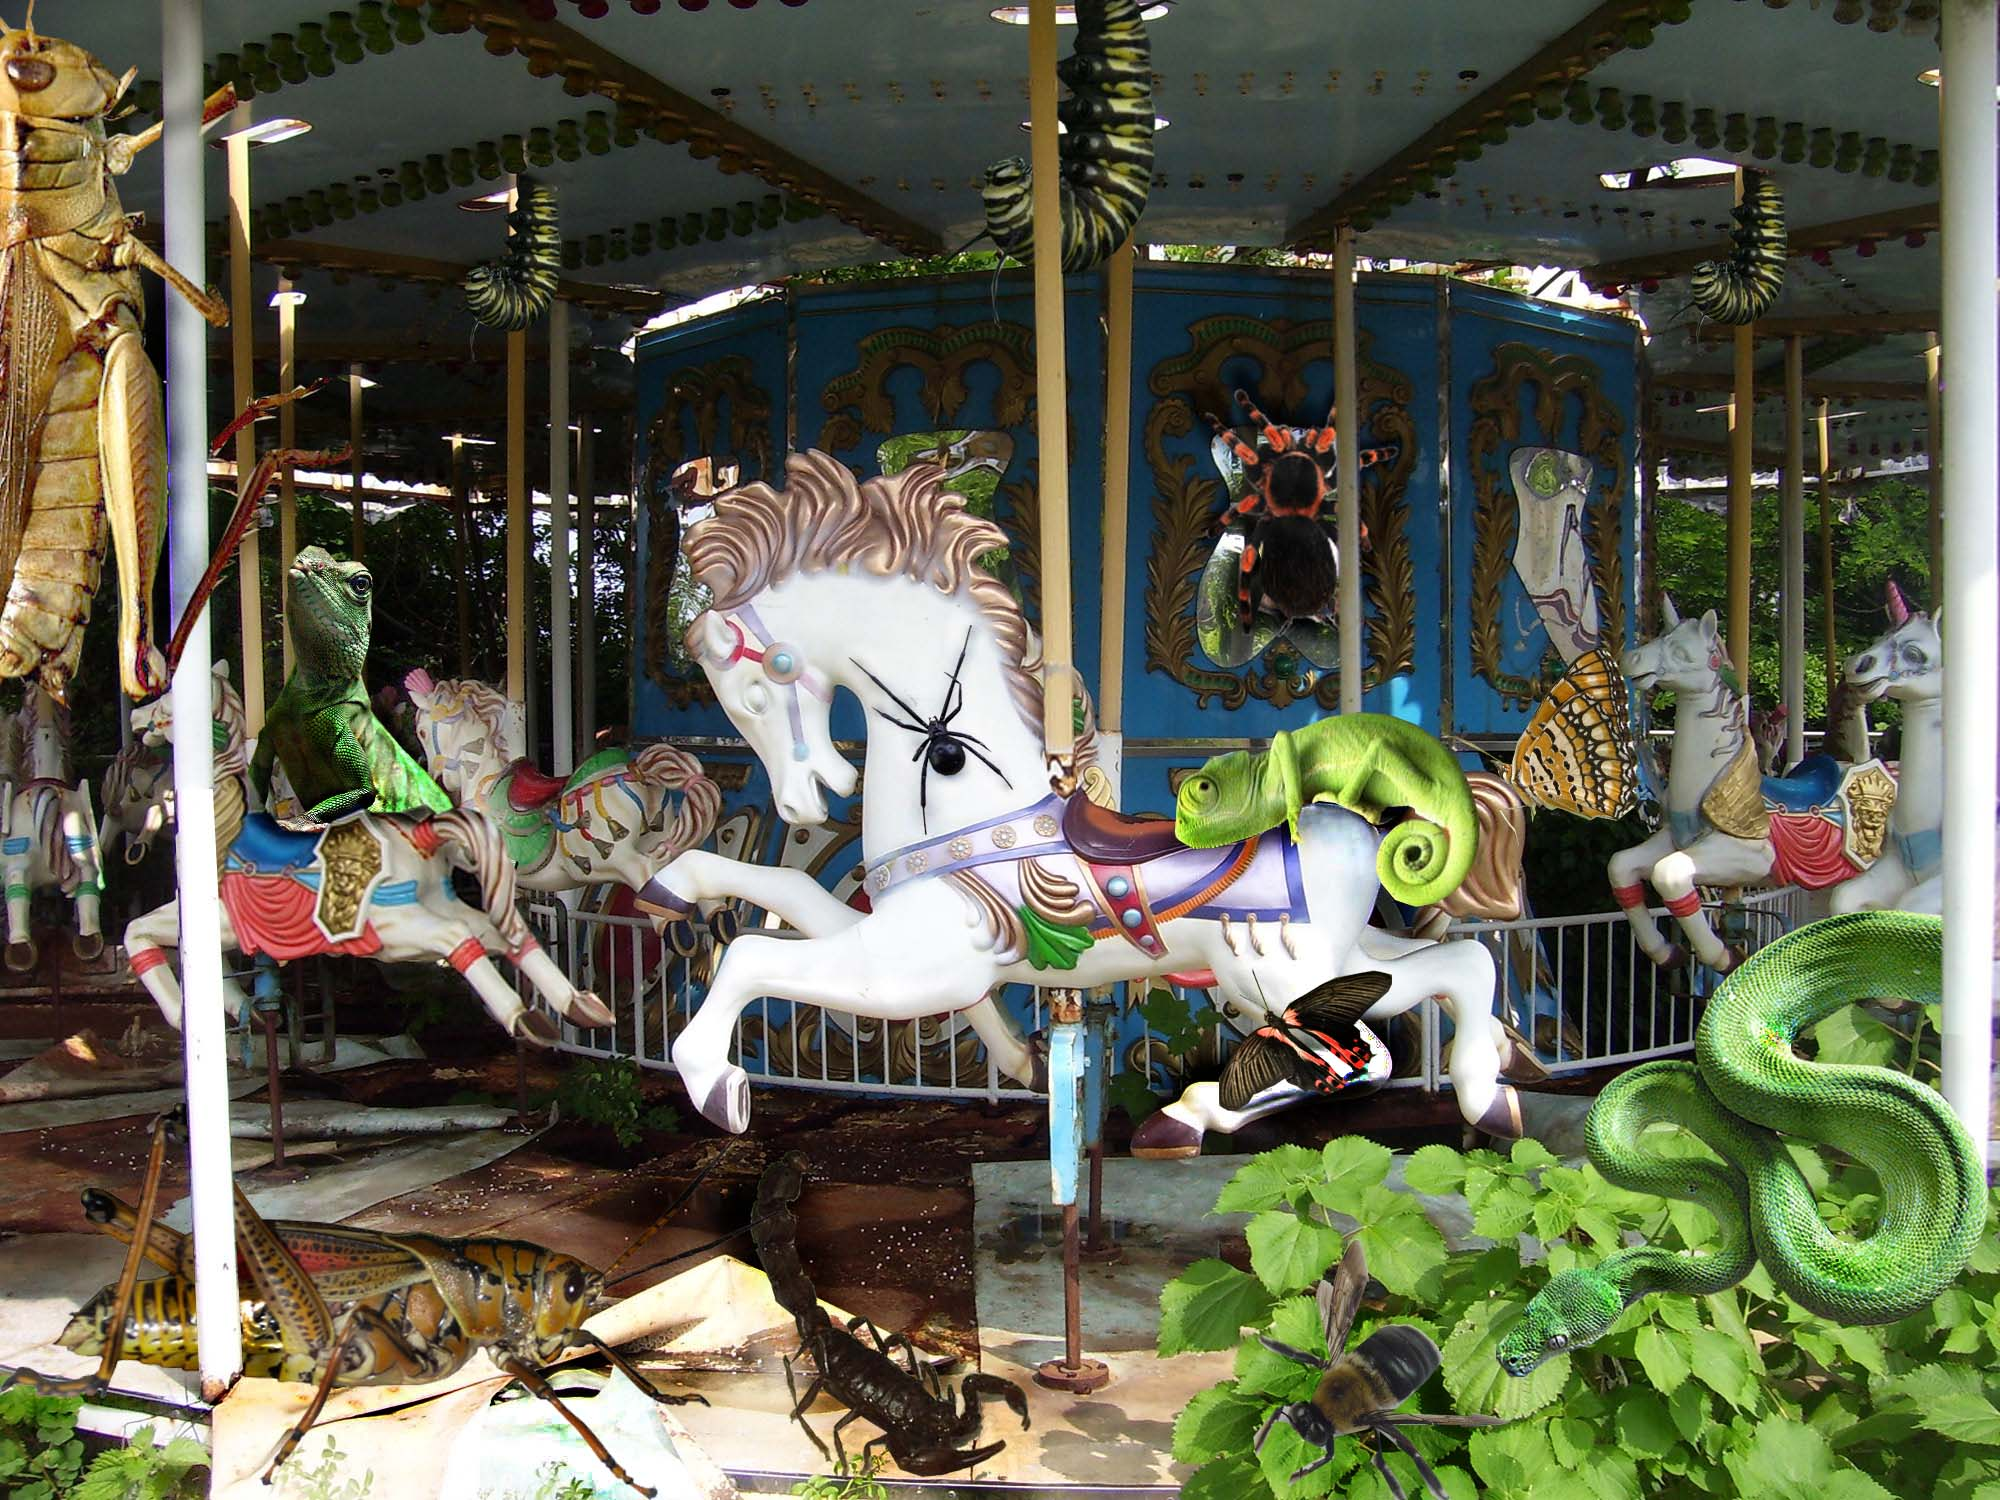 Photoshop Submission For Abandoned Carousel Contest Design 8976877